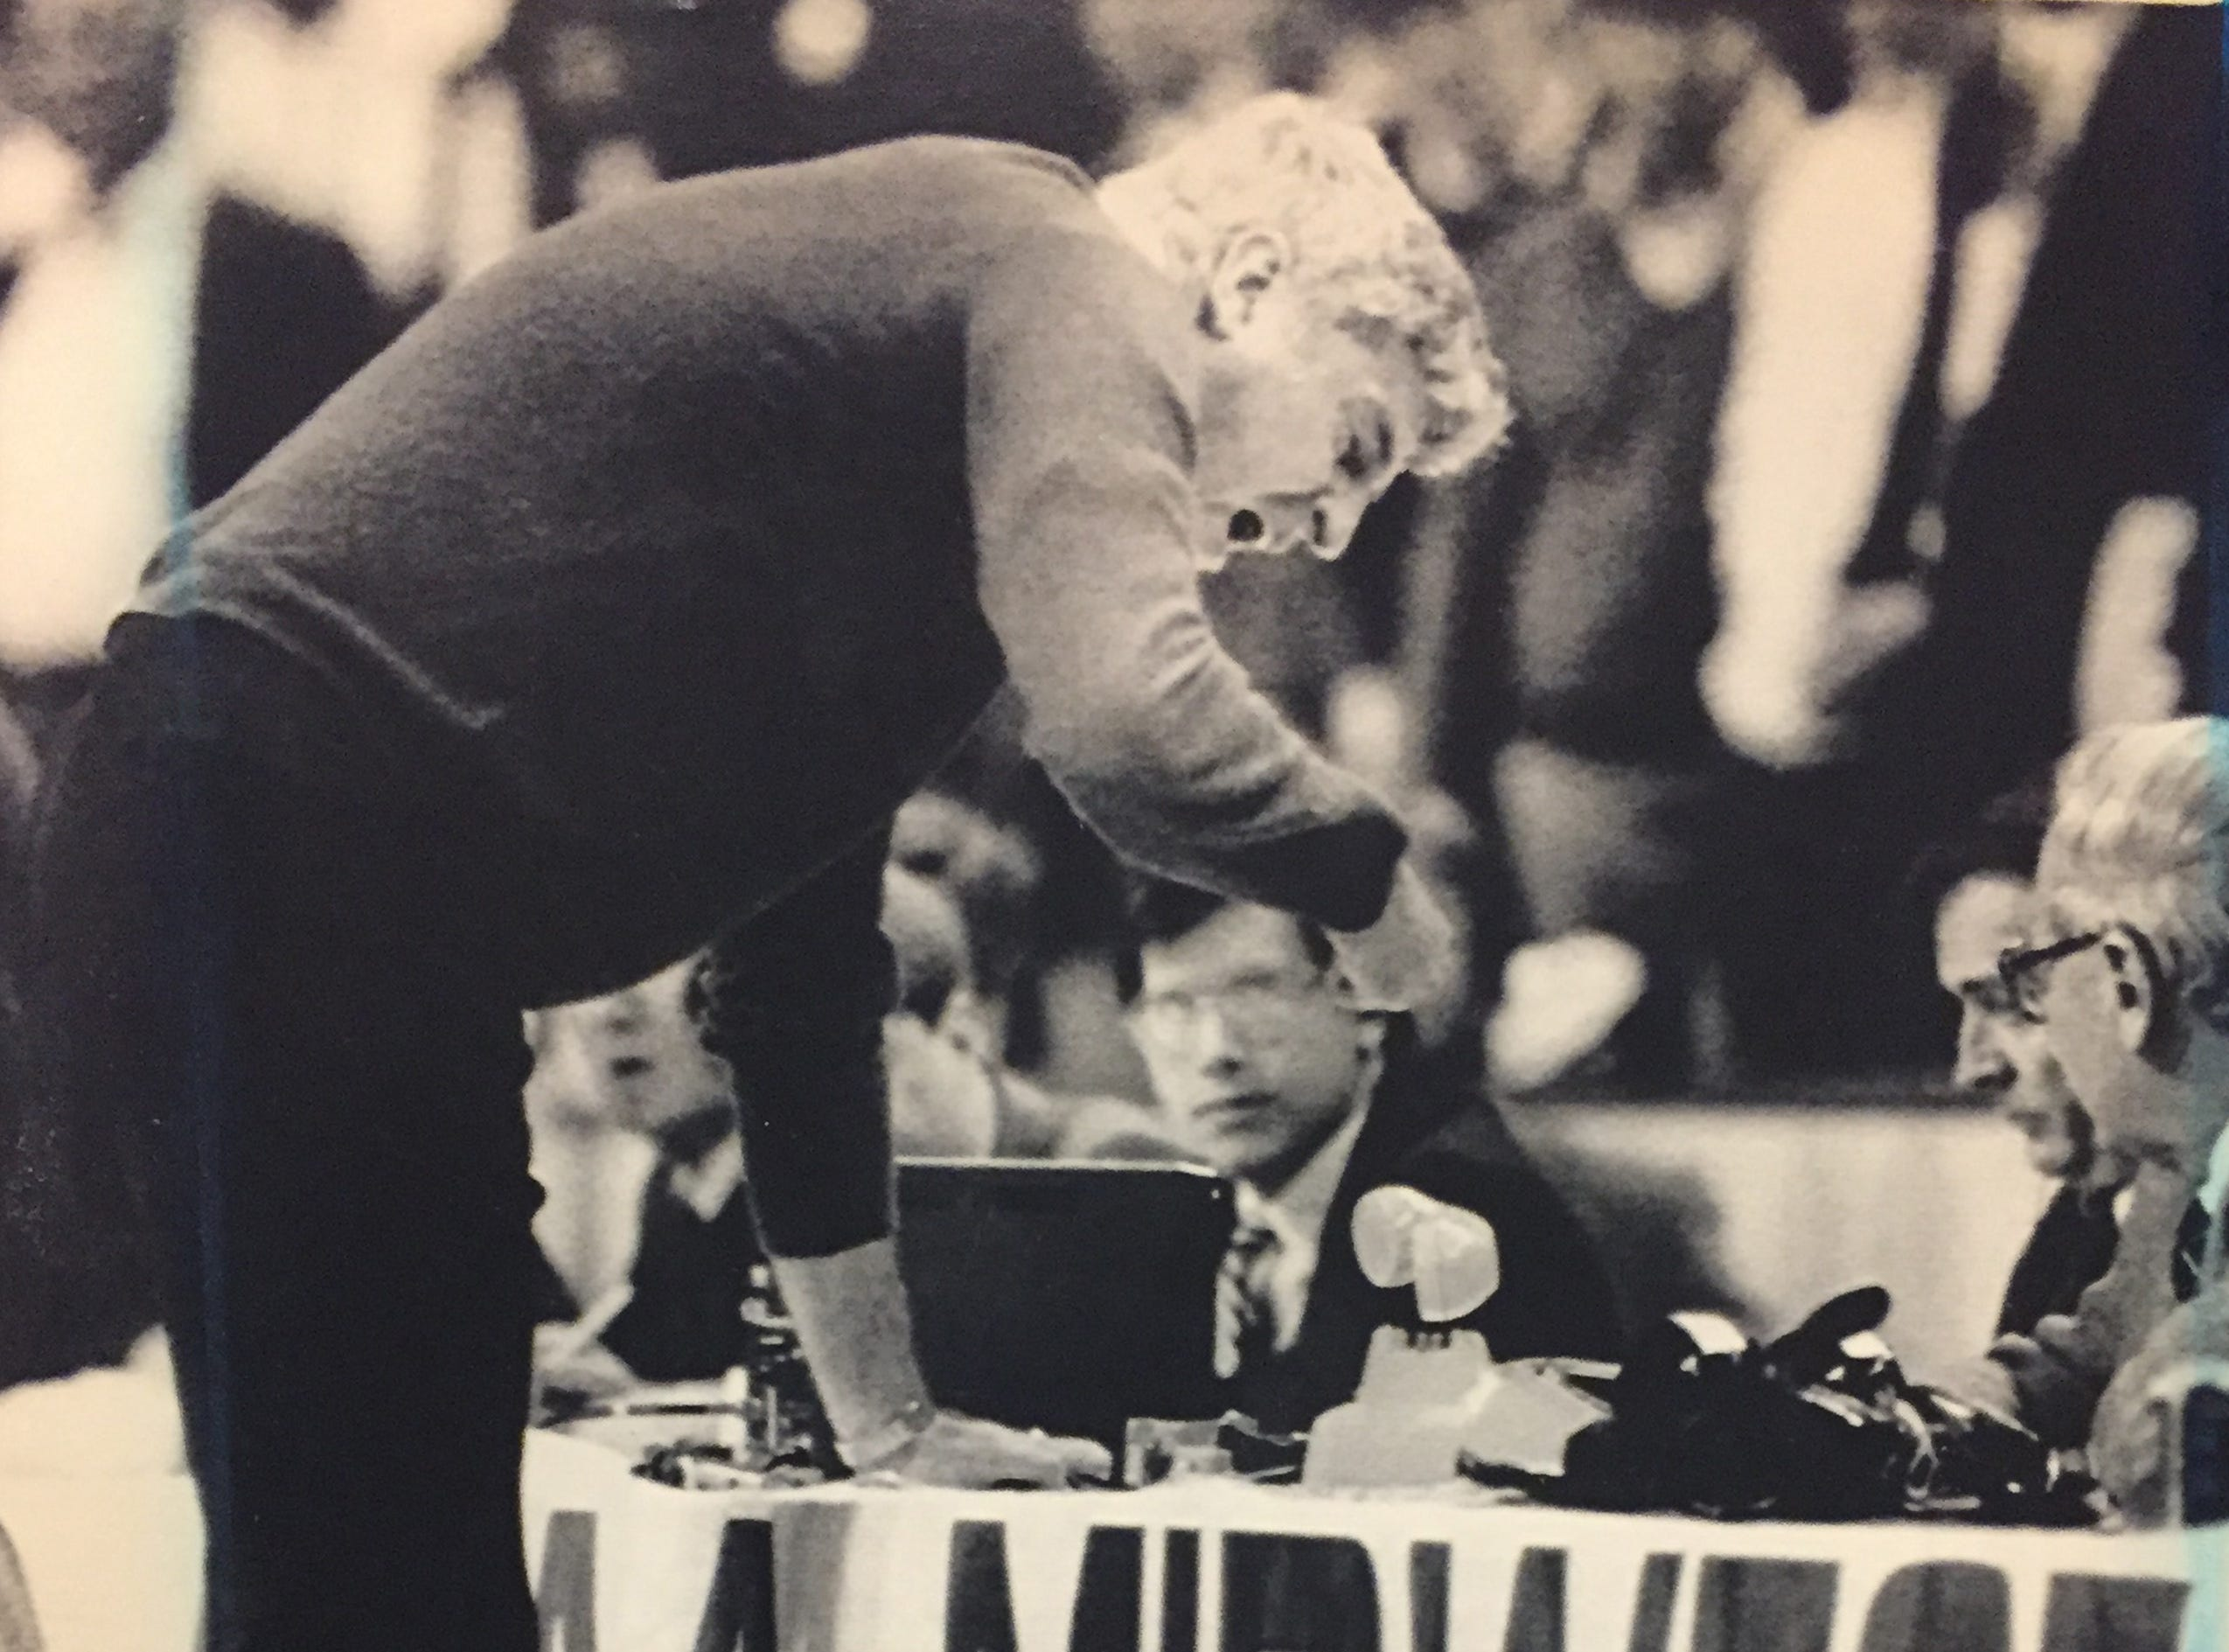 Bob Knight strikes his fist on the scorer's table, sending a telephone handset flying after he was called for a technical foul against LSU on March 22, 1987.